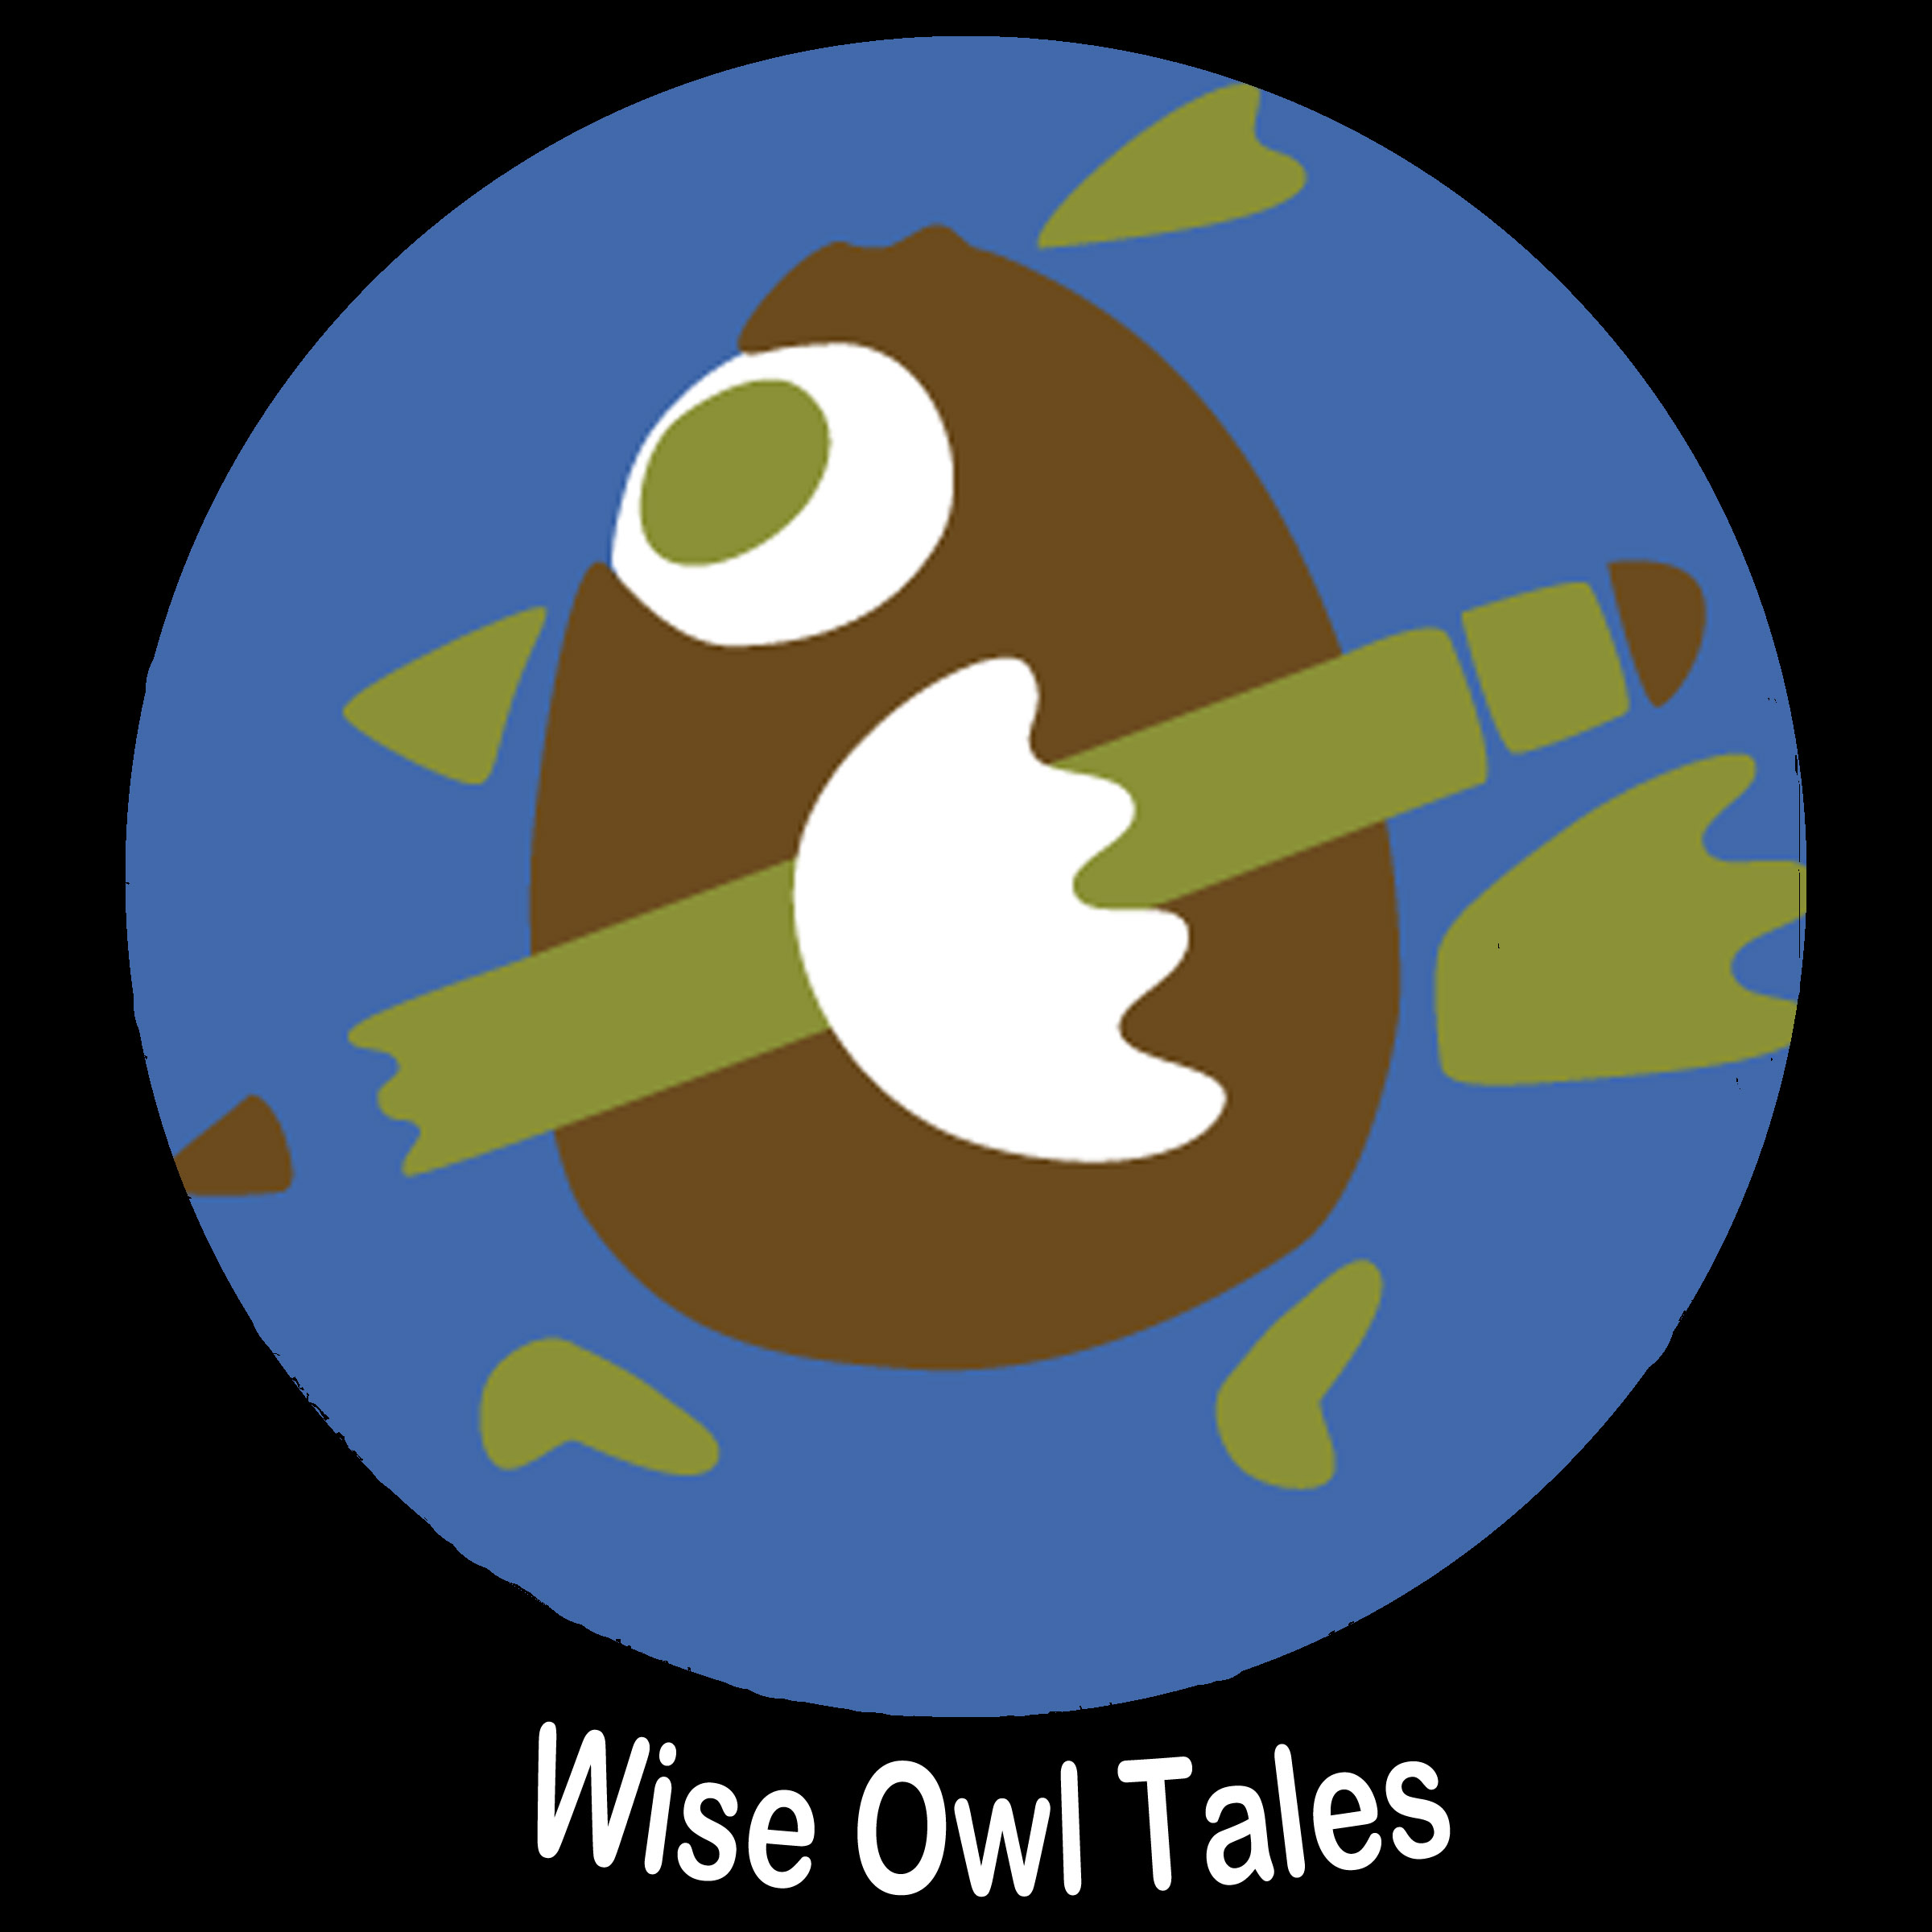 Wise Owl Tale Activities